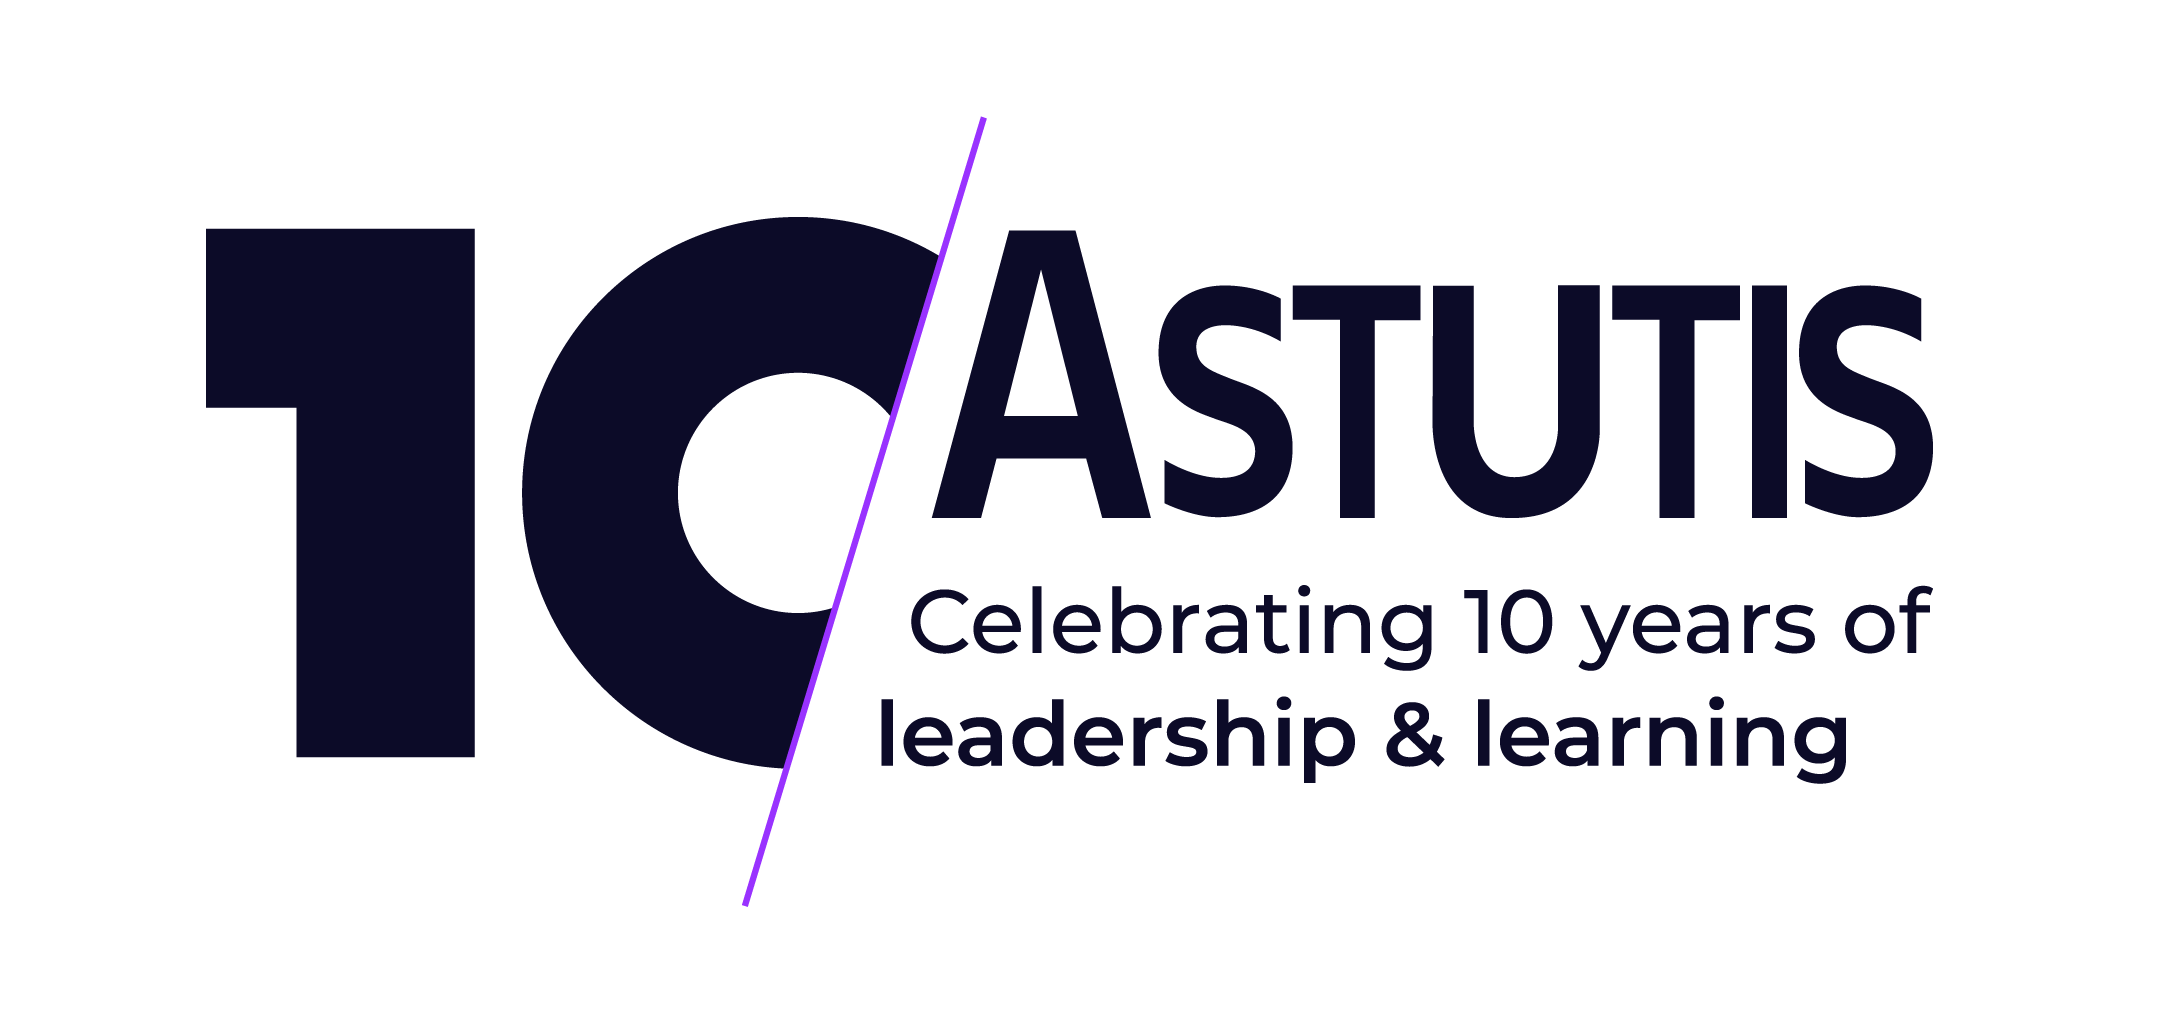 Astutis celebrates 10 years of transformative leadership and learning